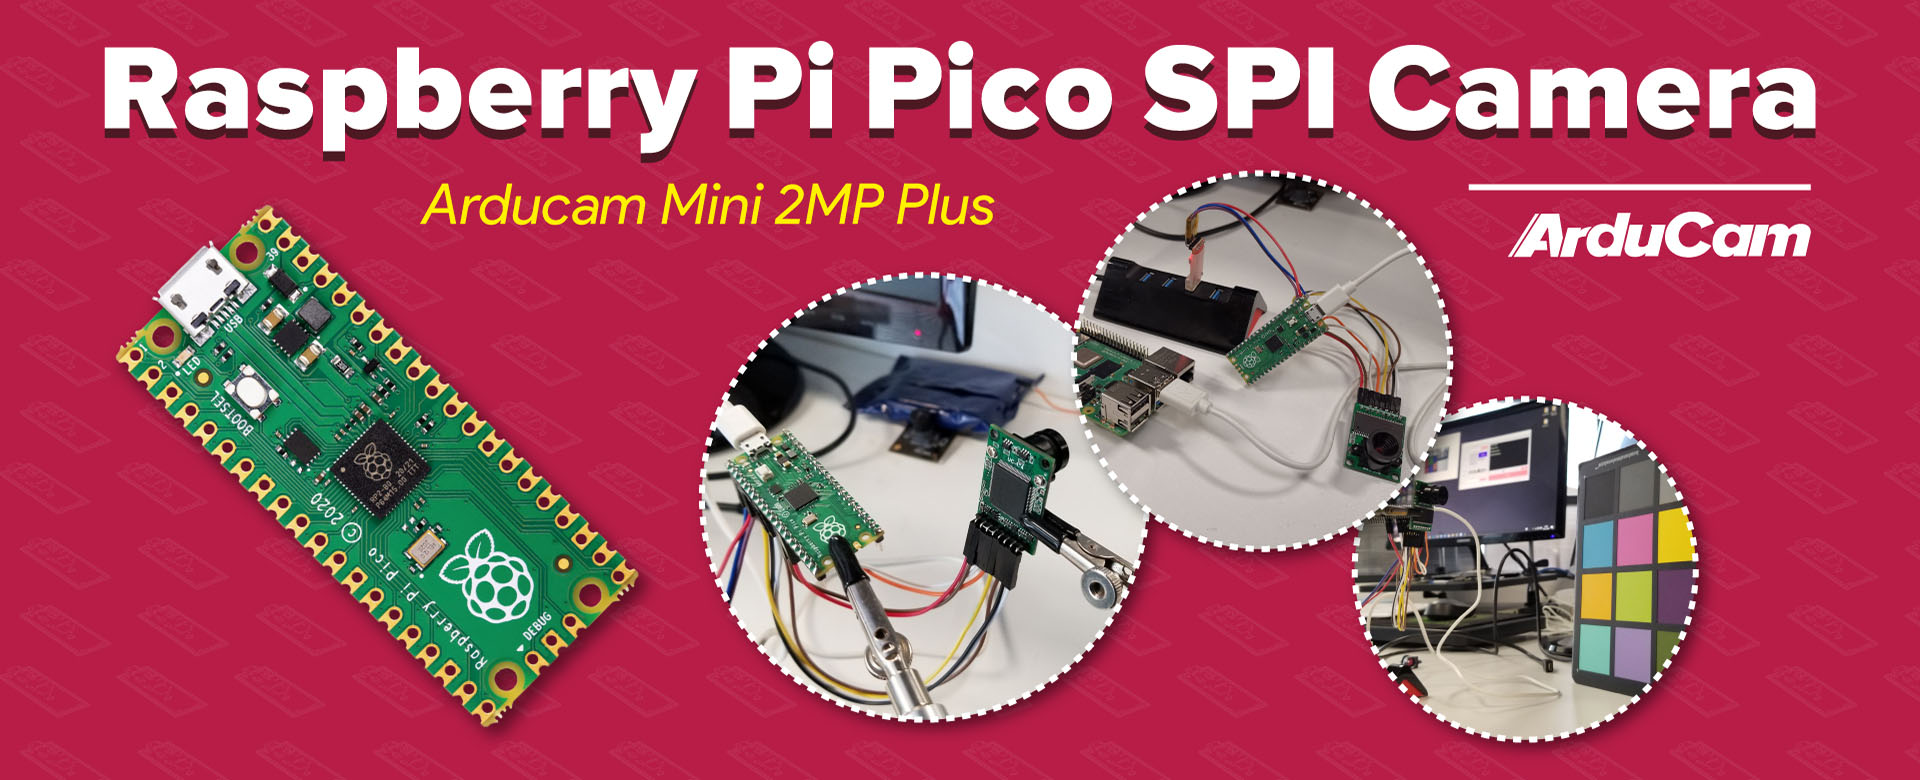 raspberry pi pico camera arducam mini